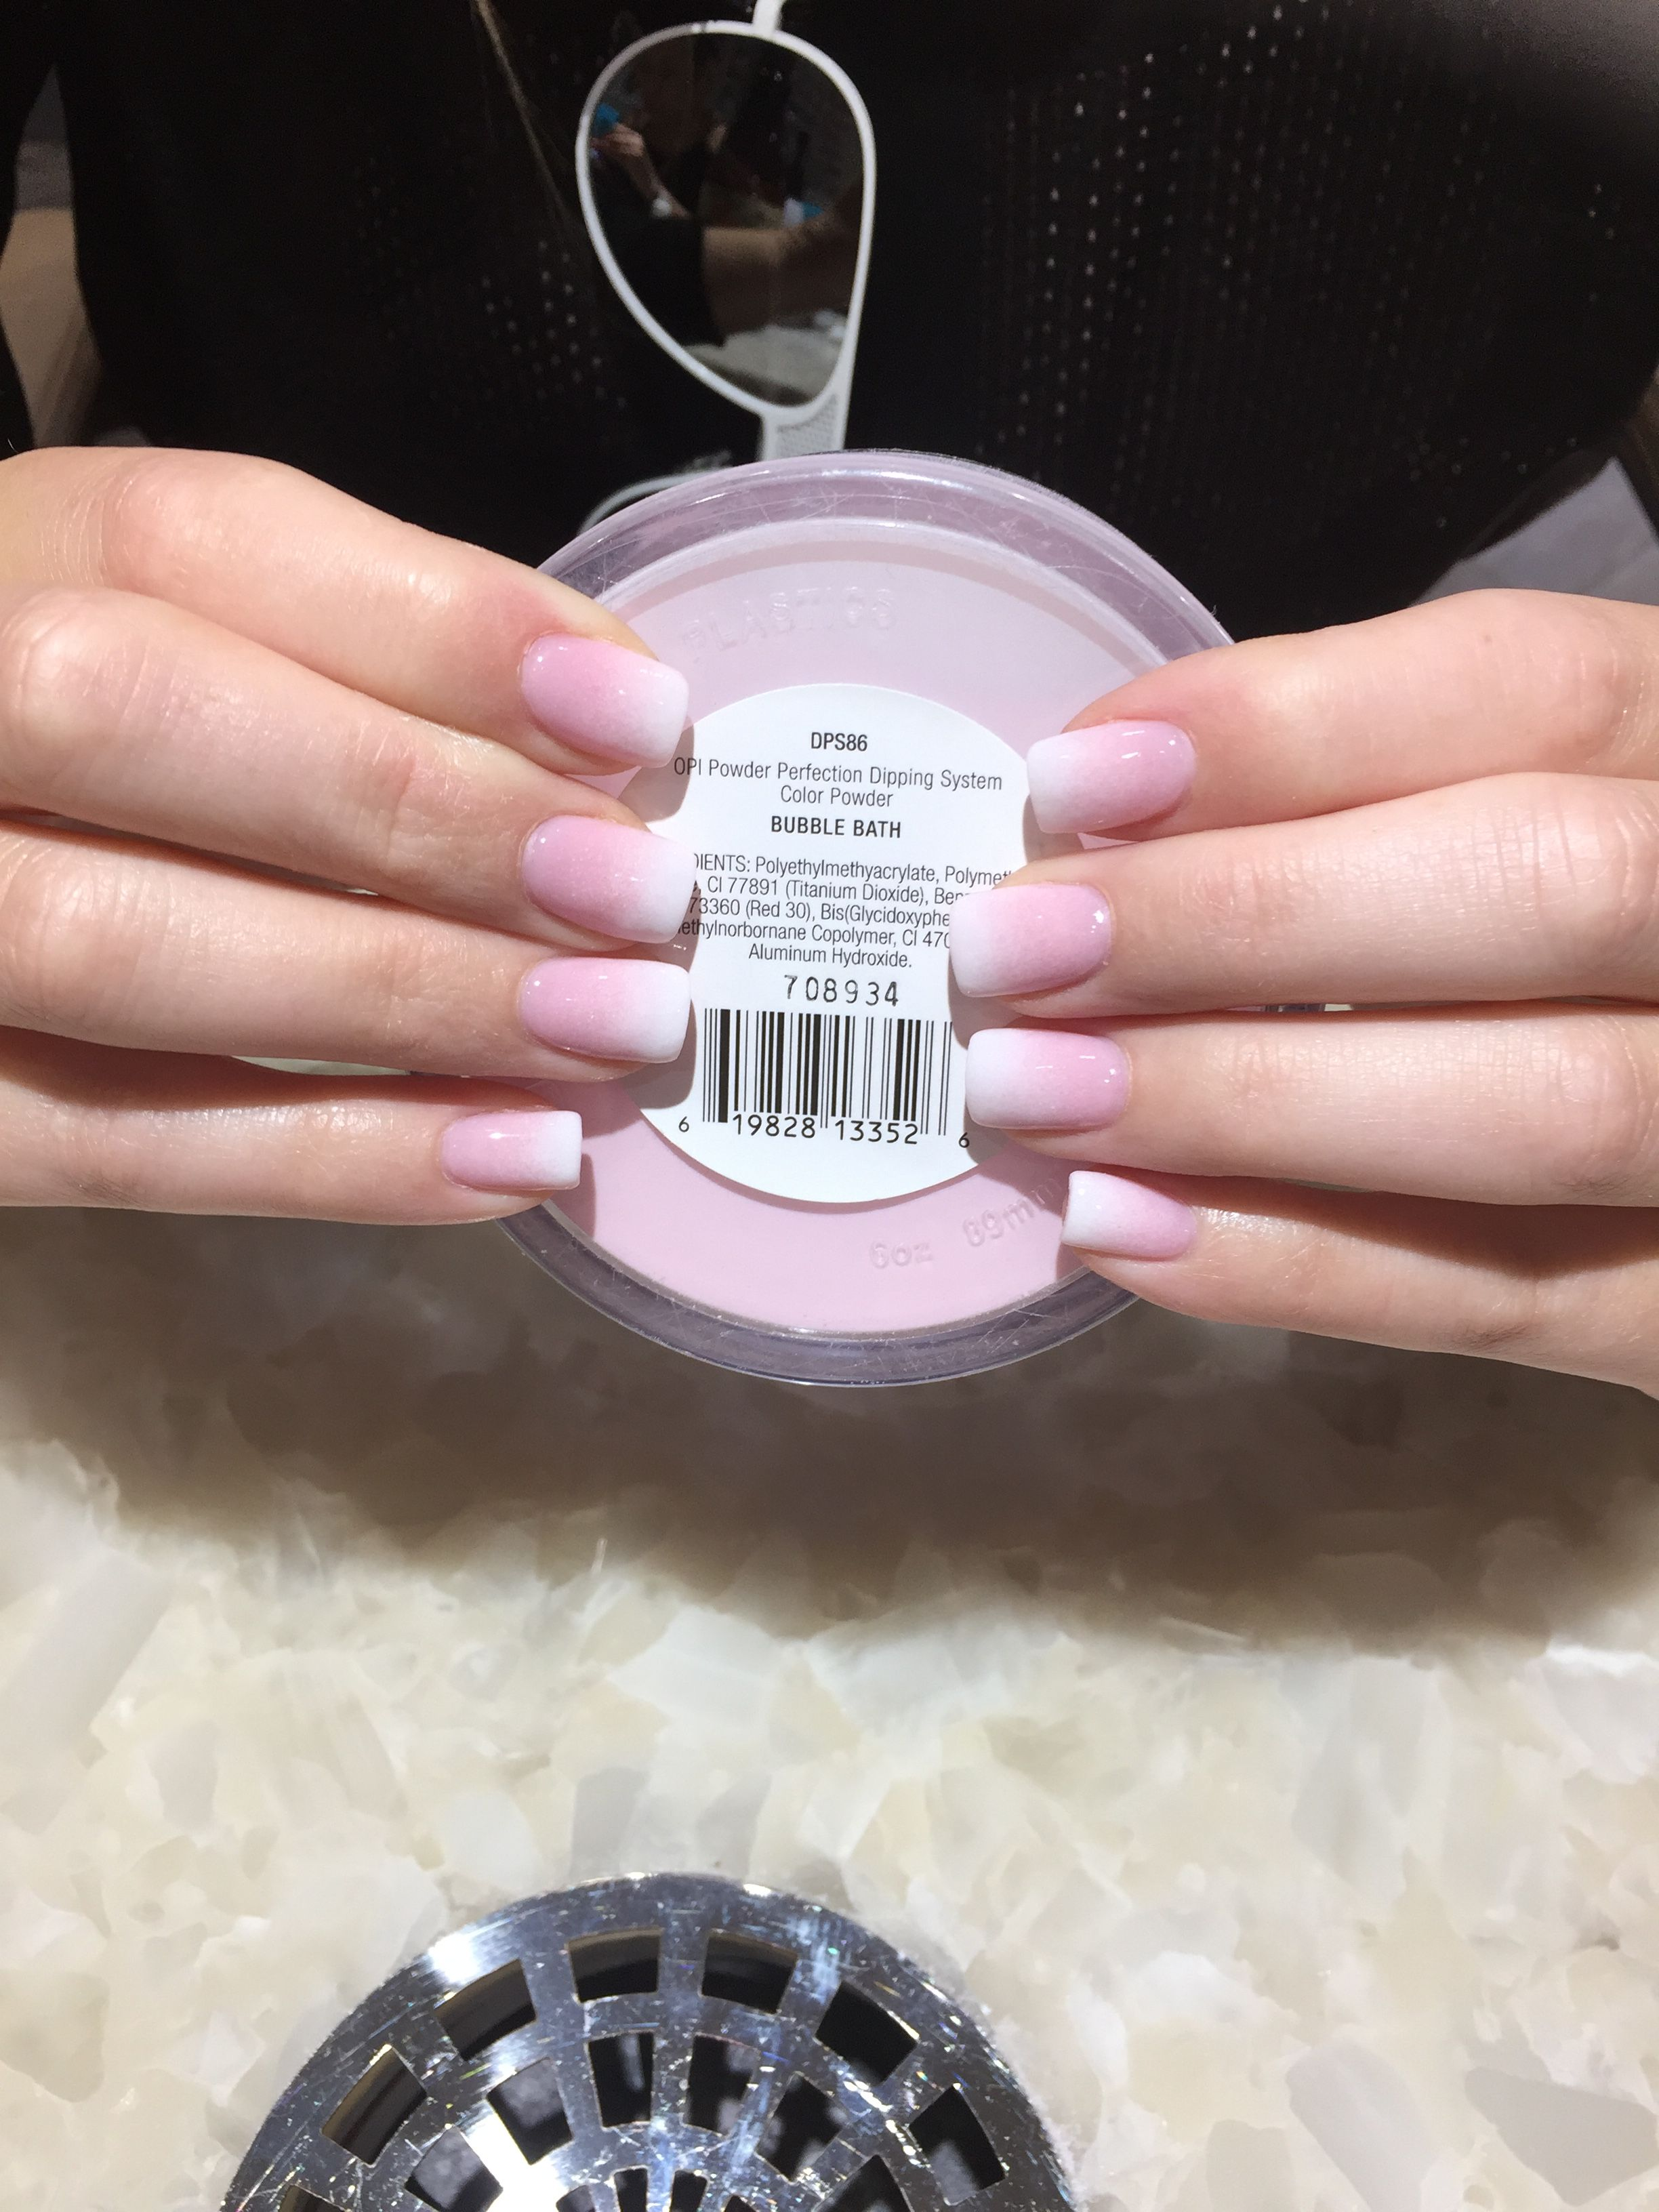 Odorless Nails In Saugus Prices Are Reasonable Cozy Friendly